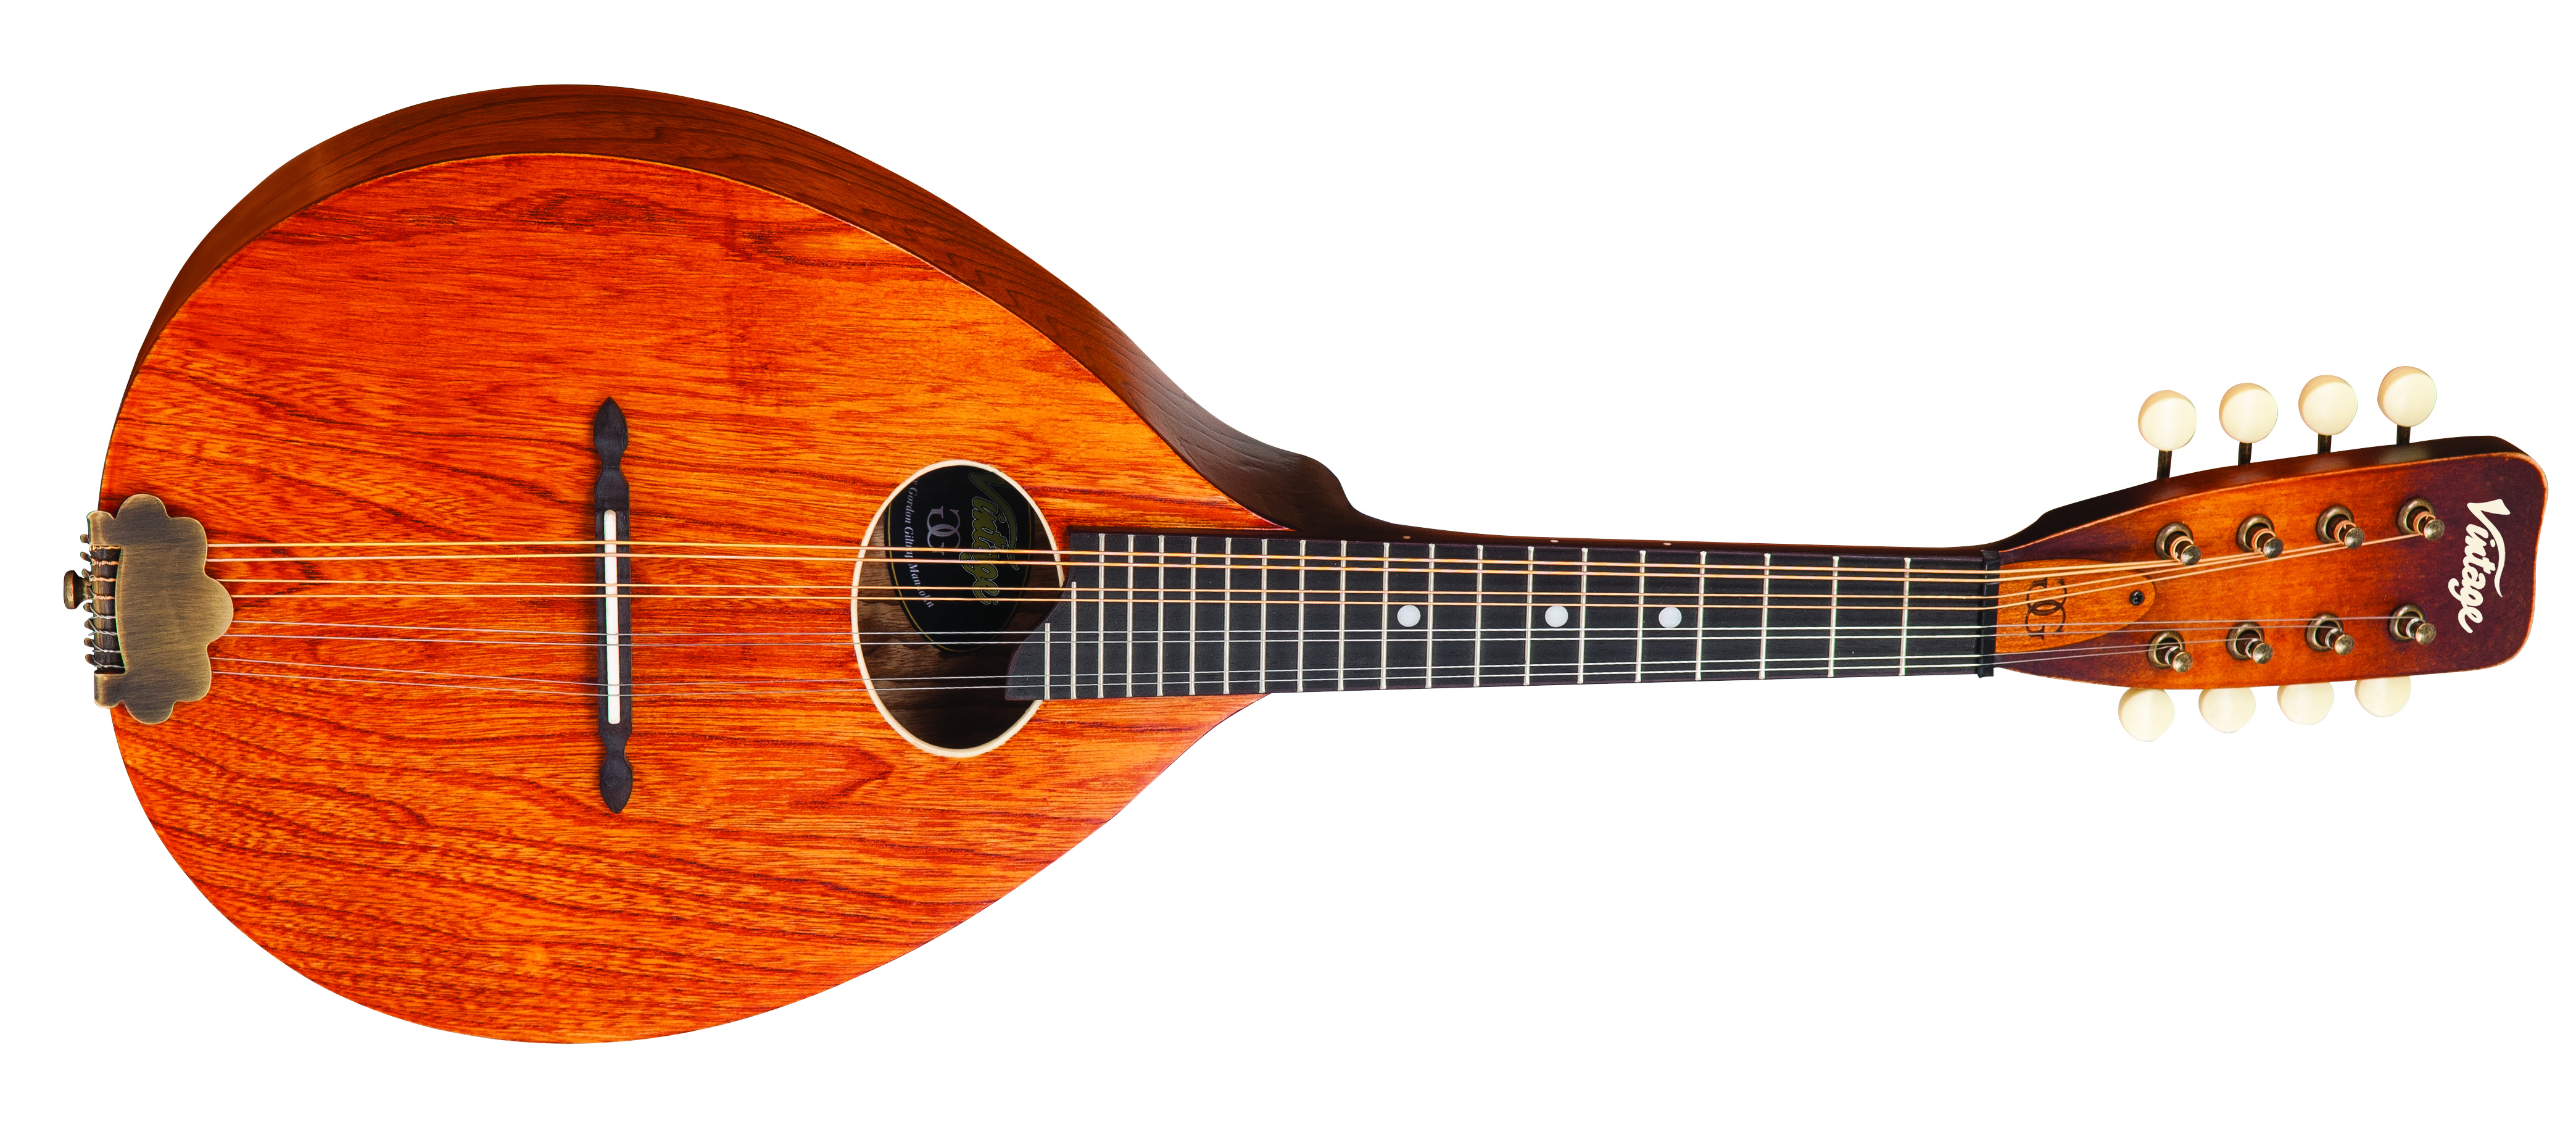 NAMM 2017: Vintage Reveal D-Day Mandolin - Guitar com | All Things